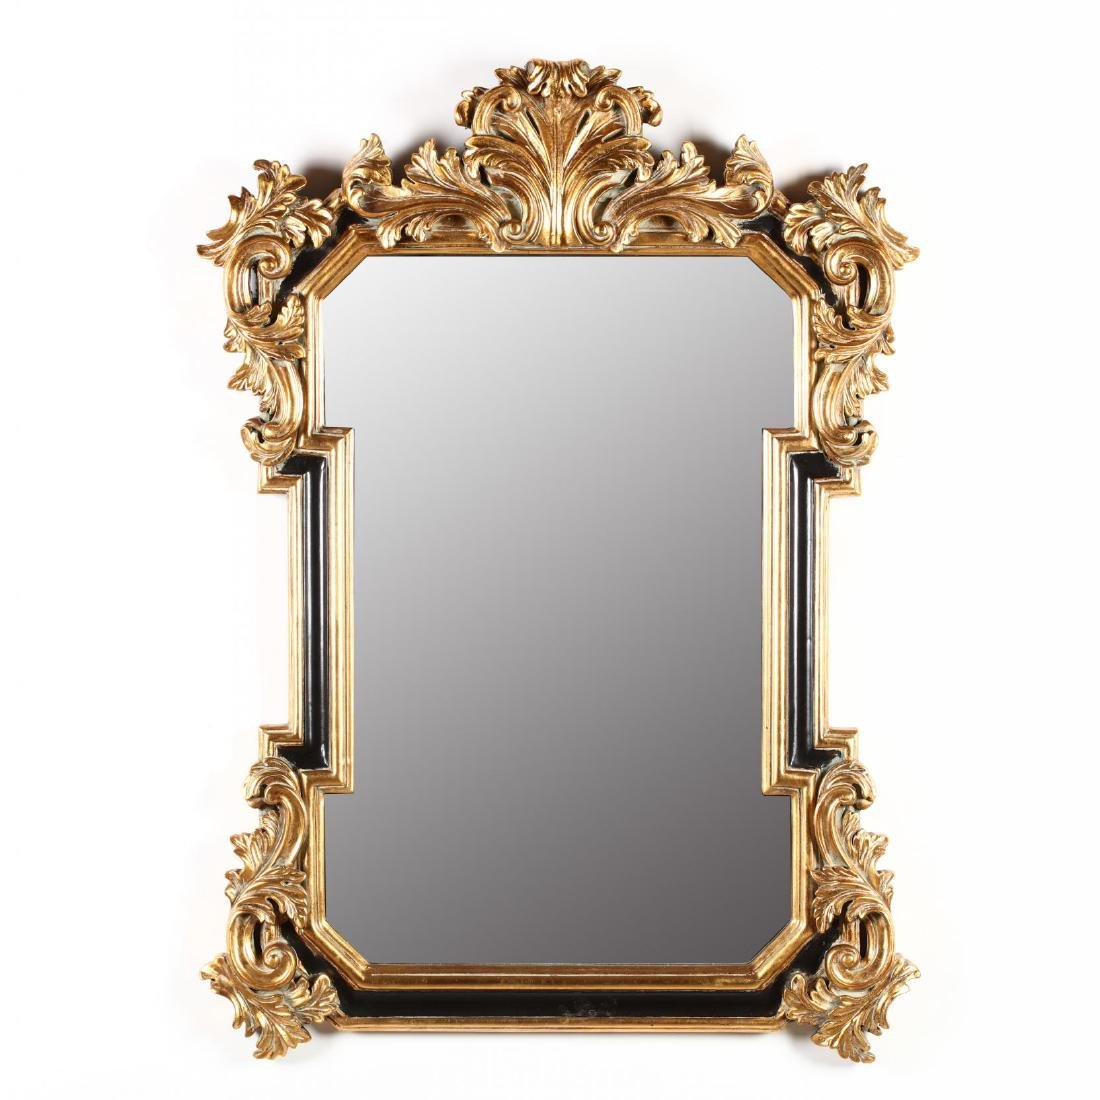 Italianate Painted and Gilt Composition Wall Mirror